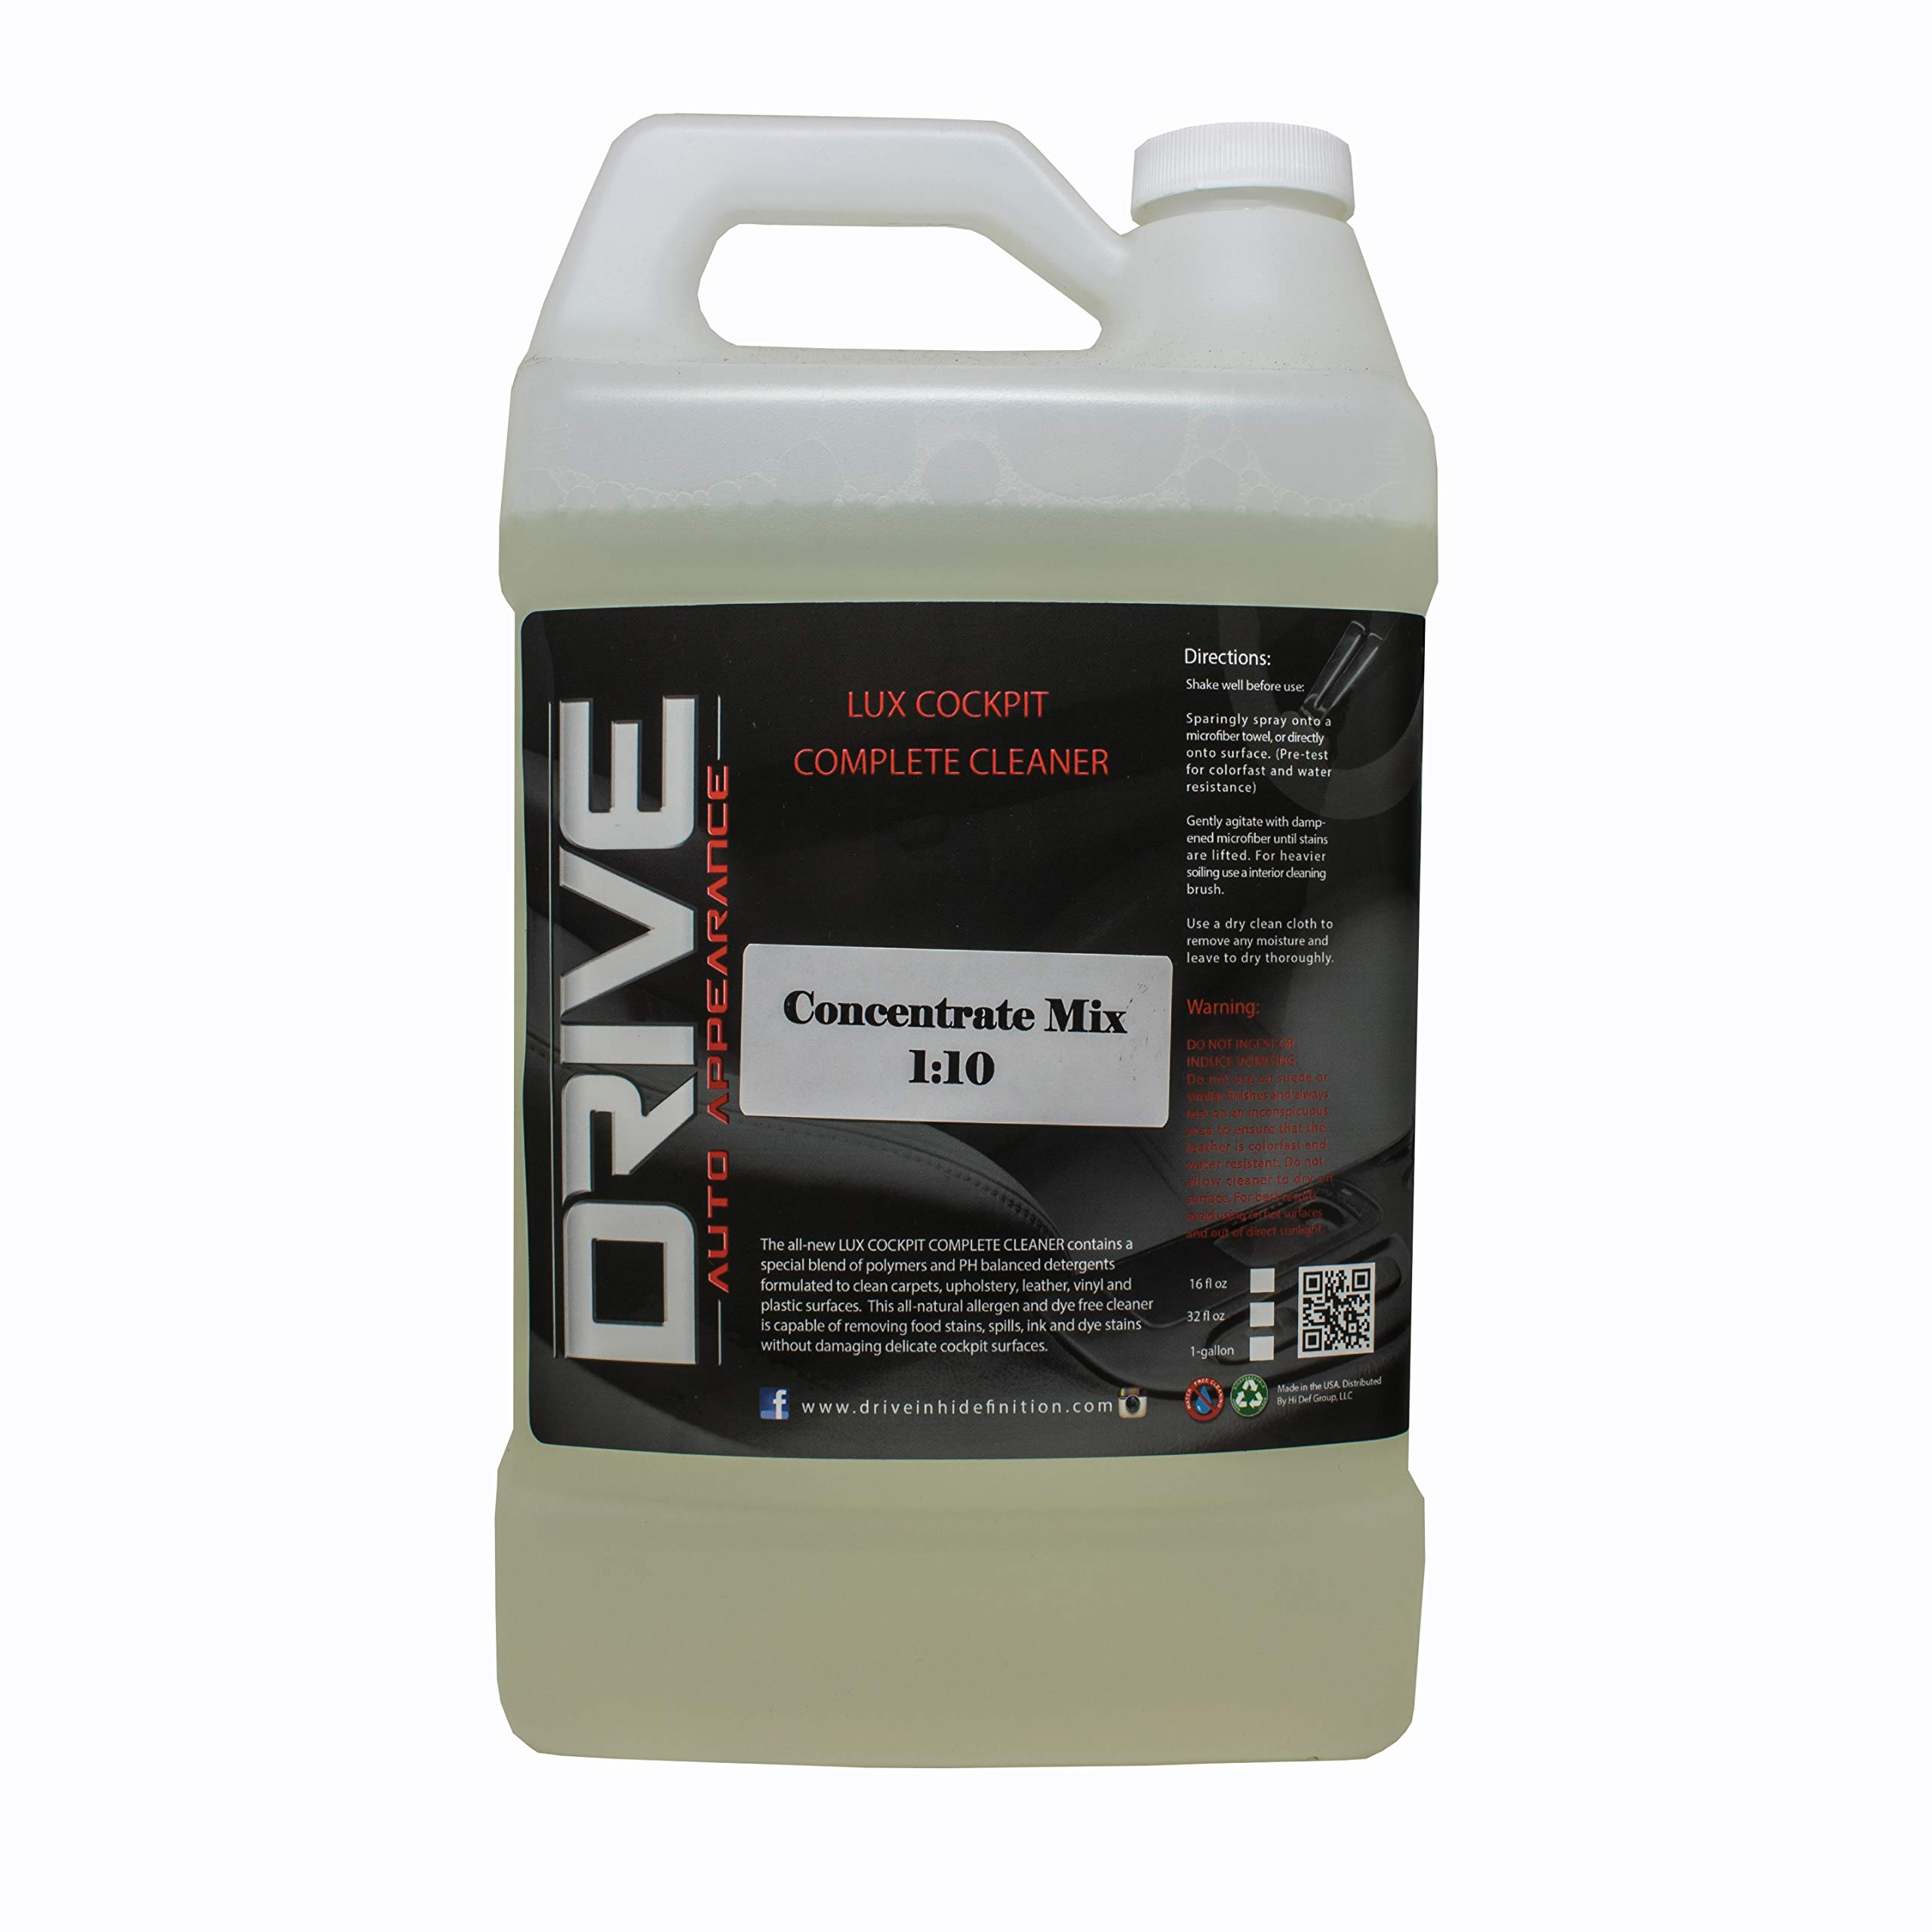 Drive Auto Appearance Lux Cockpit Complete Professional Concentrate Interior Cleaner (1 Gallon) Multipurpose, Multi-Surface, and Allergen Free. Perfect for Cars, Boats, RVs